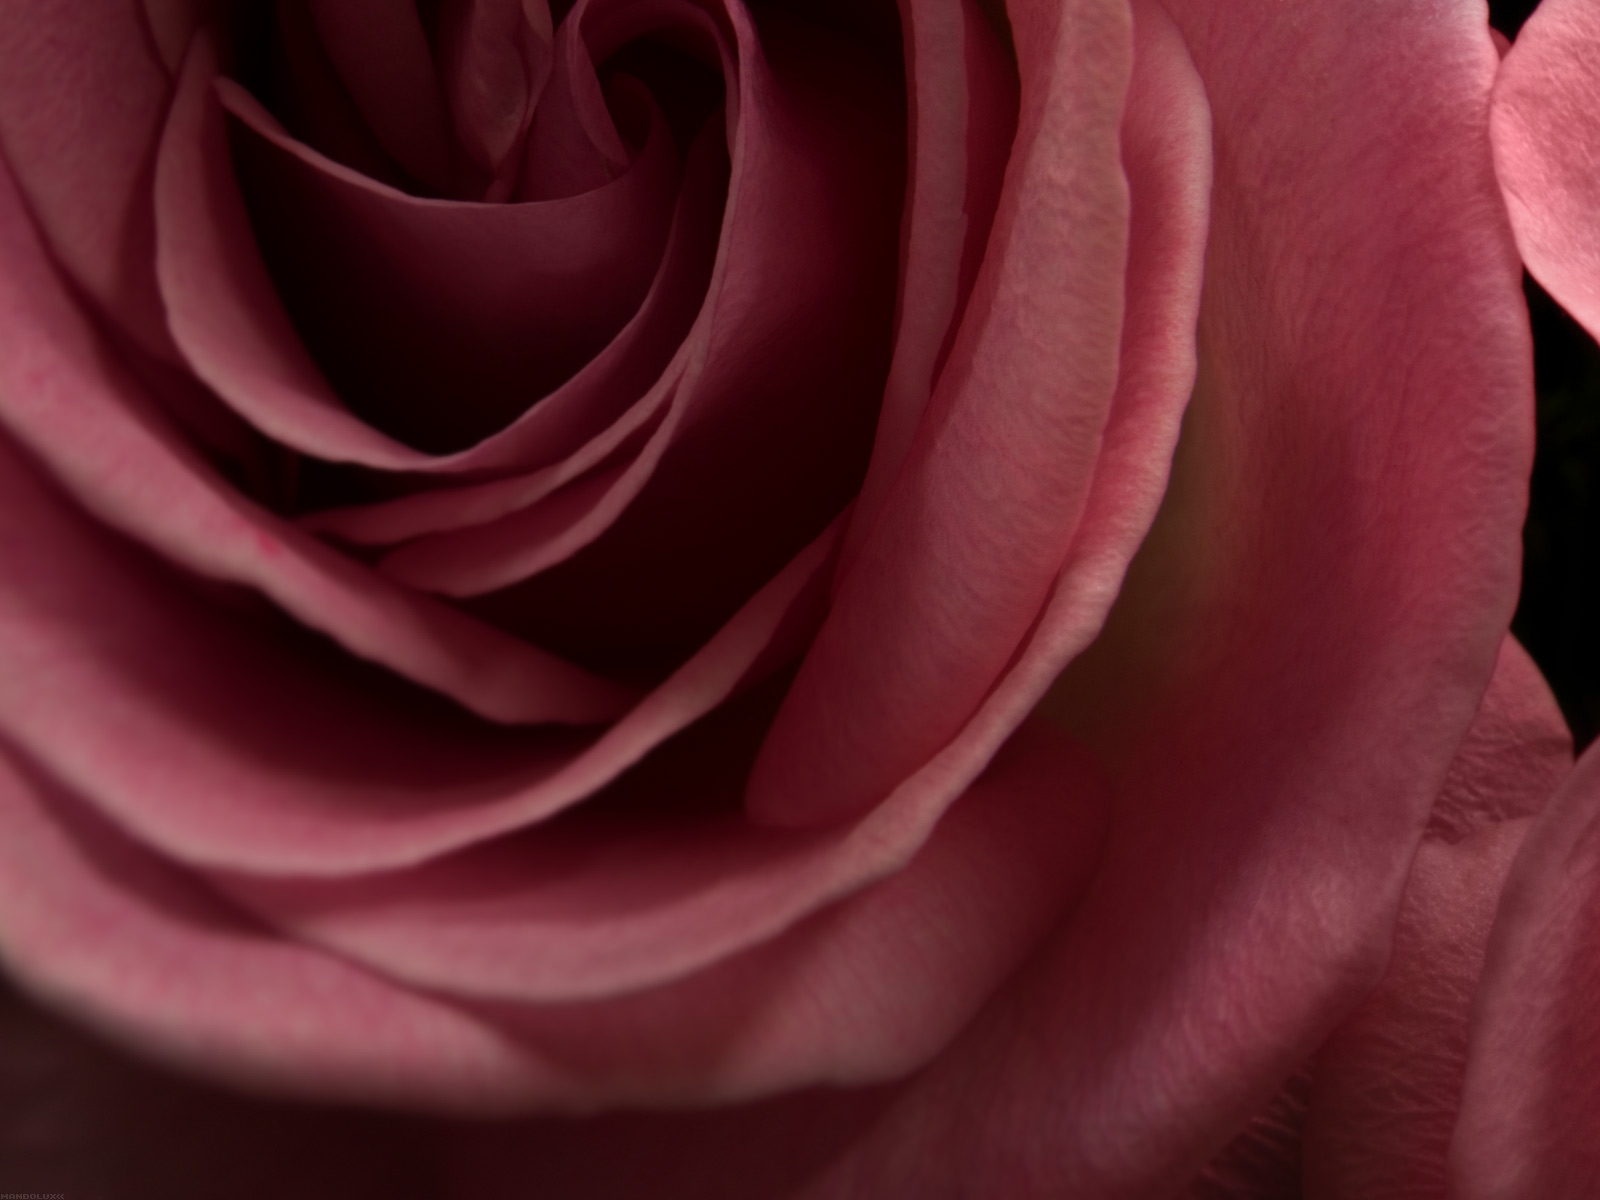 Black and White Wallpapers Burgundy Rose Wallpaper 1600x1200